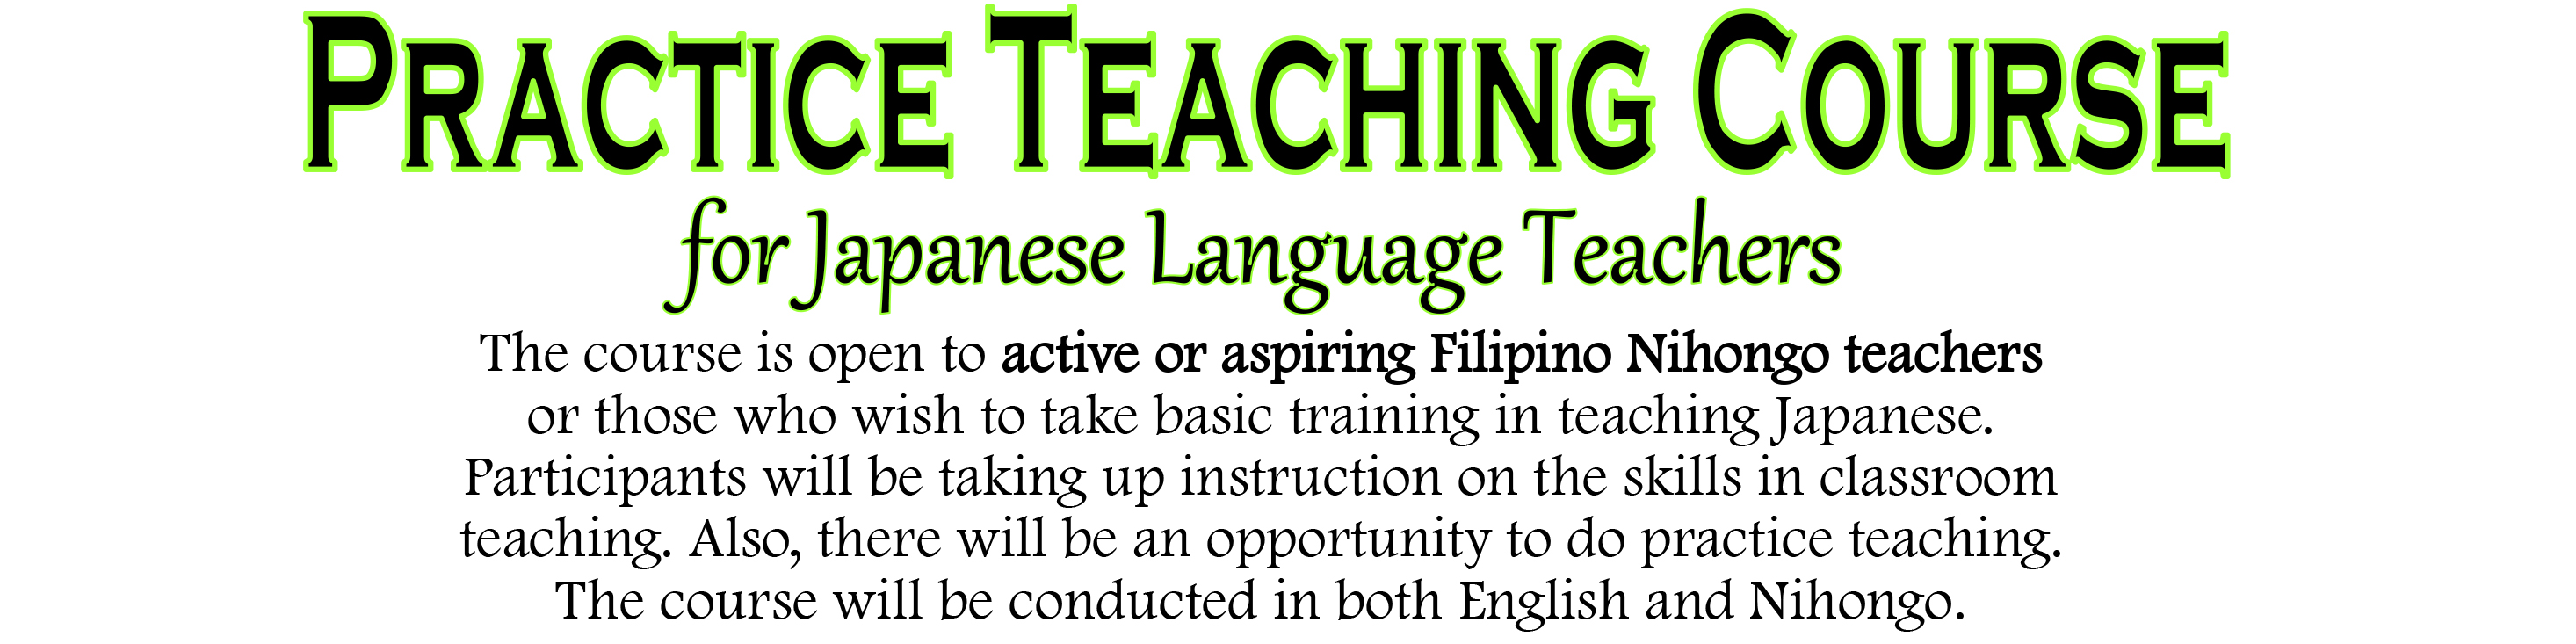 Practice Teaching Course in Manila – March 21, 22 & 28, 2020